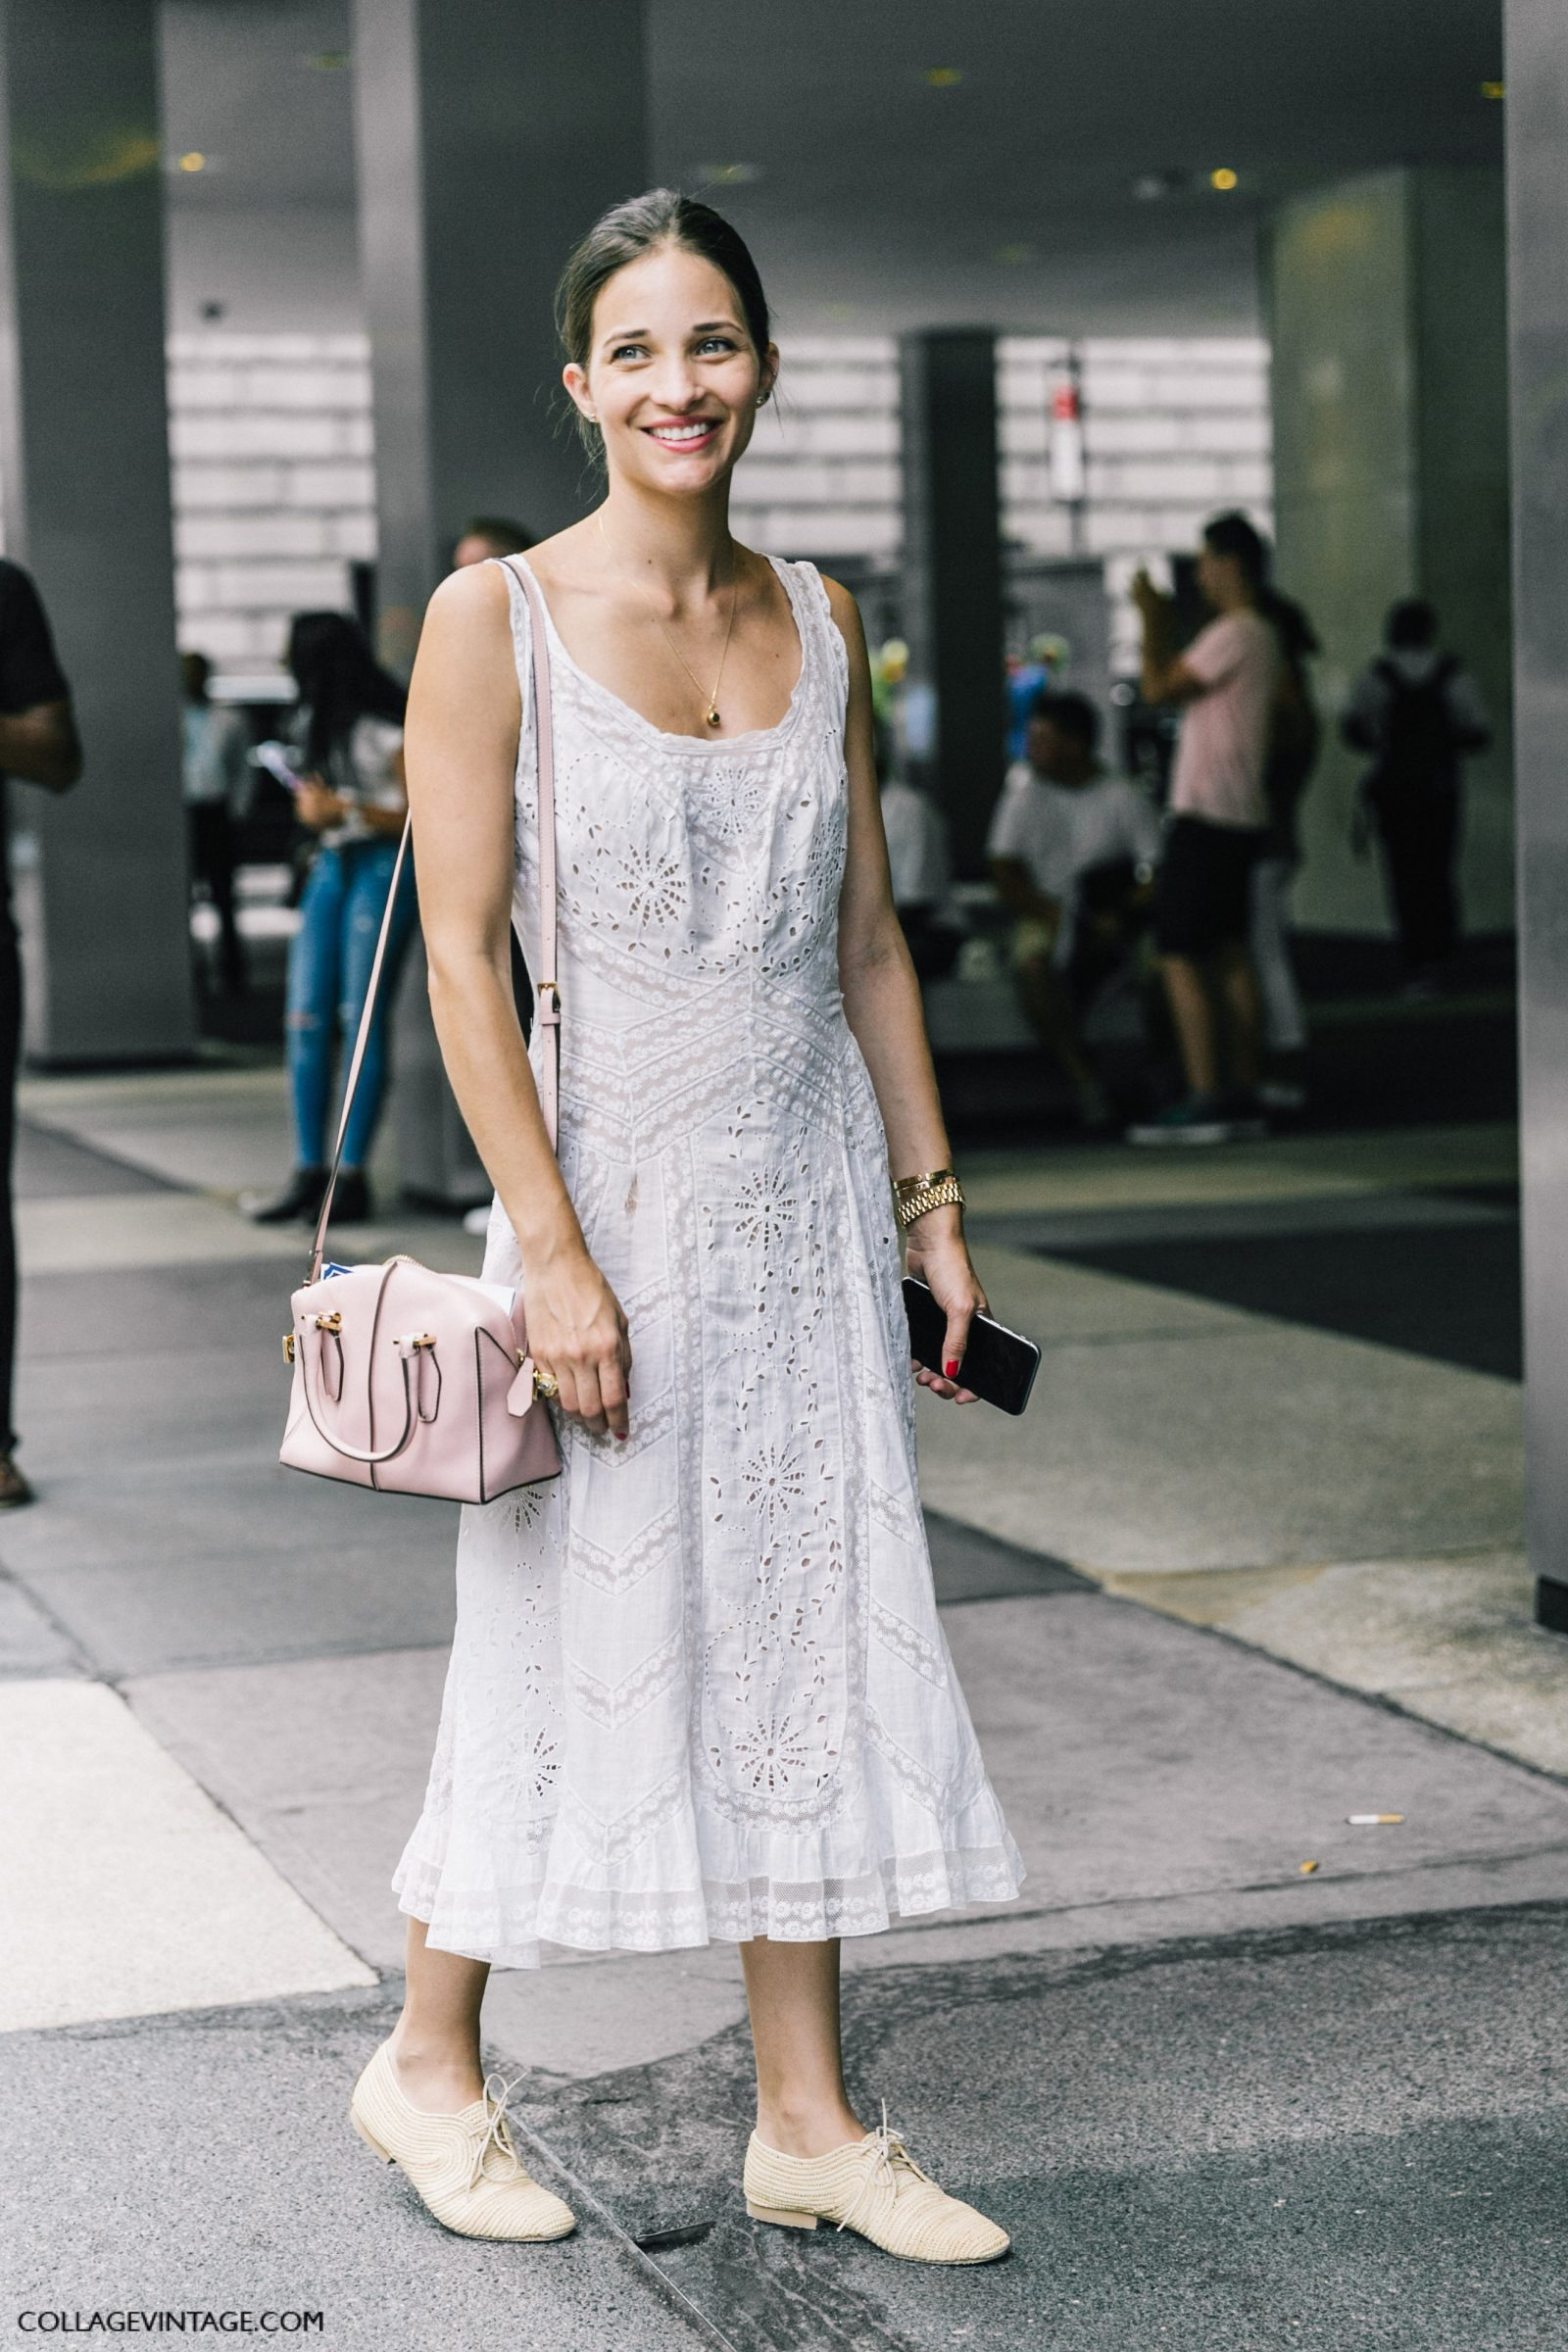 nyfw-new_york_fashion_week_ss17-street_style-outfits-collage_vintage-maria_duenas_jacobs